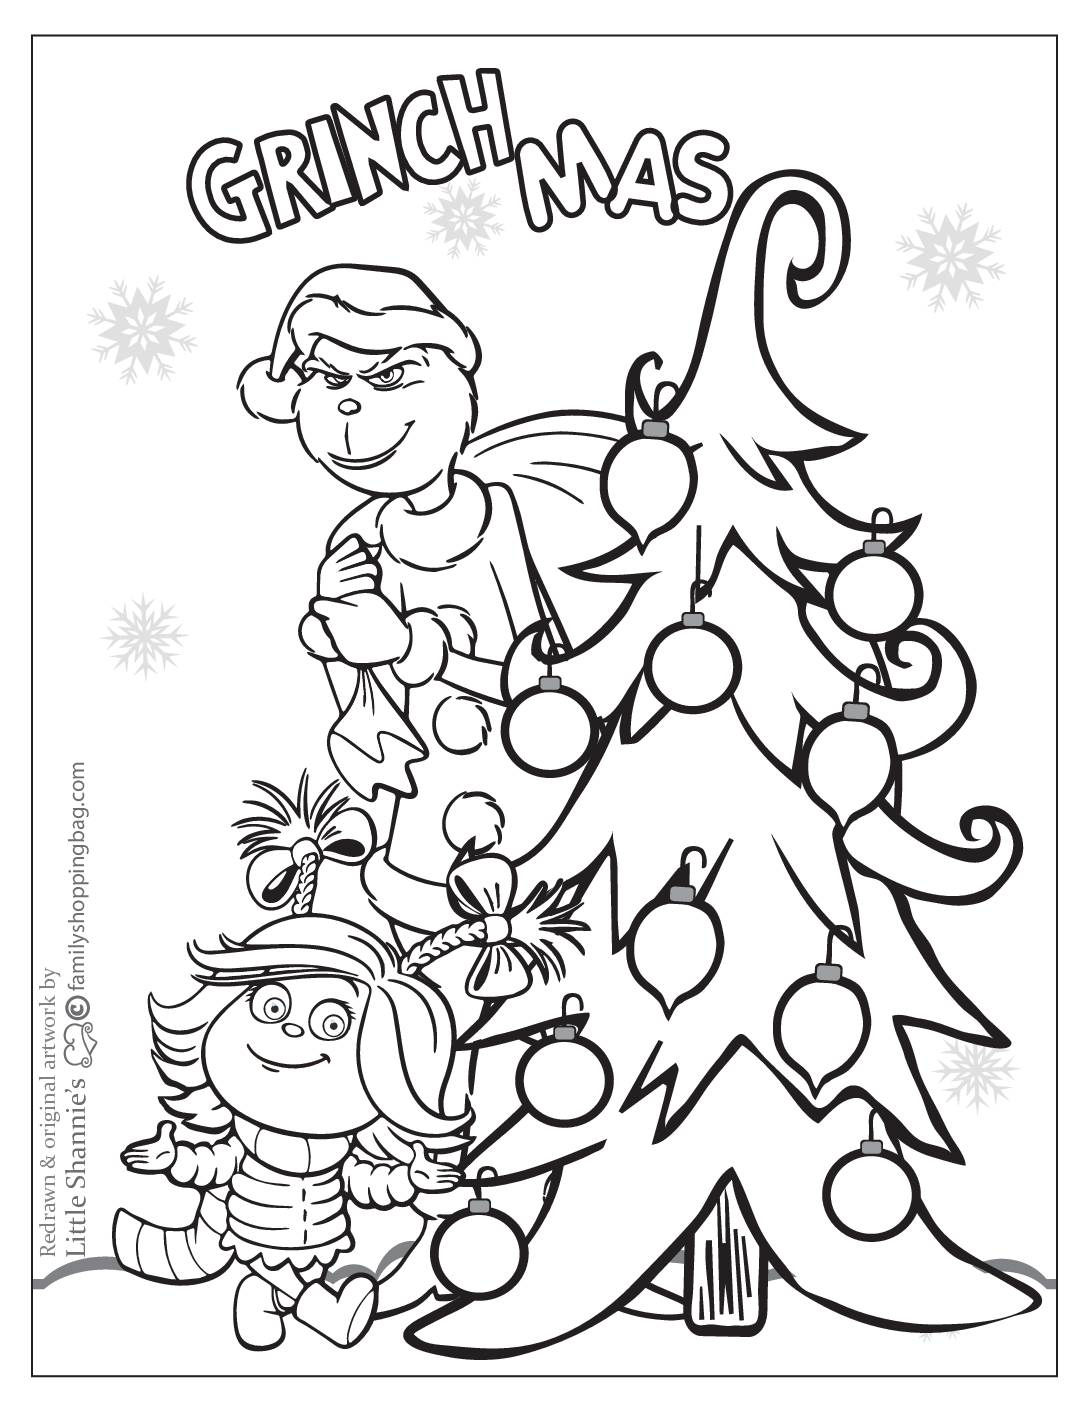 Coloring Page 2 Grinch